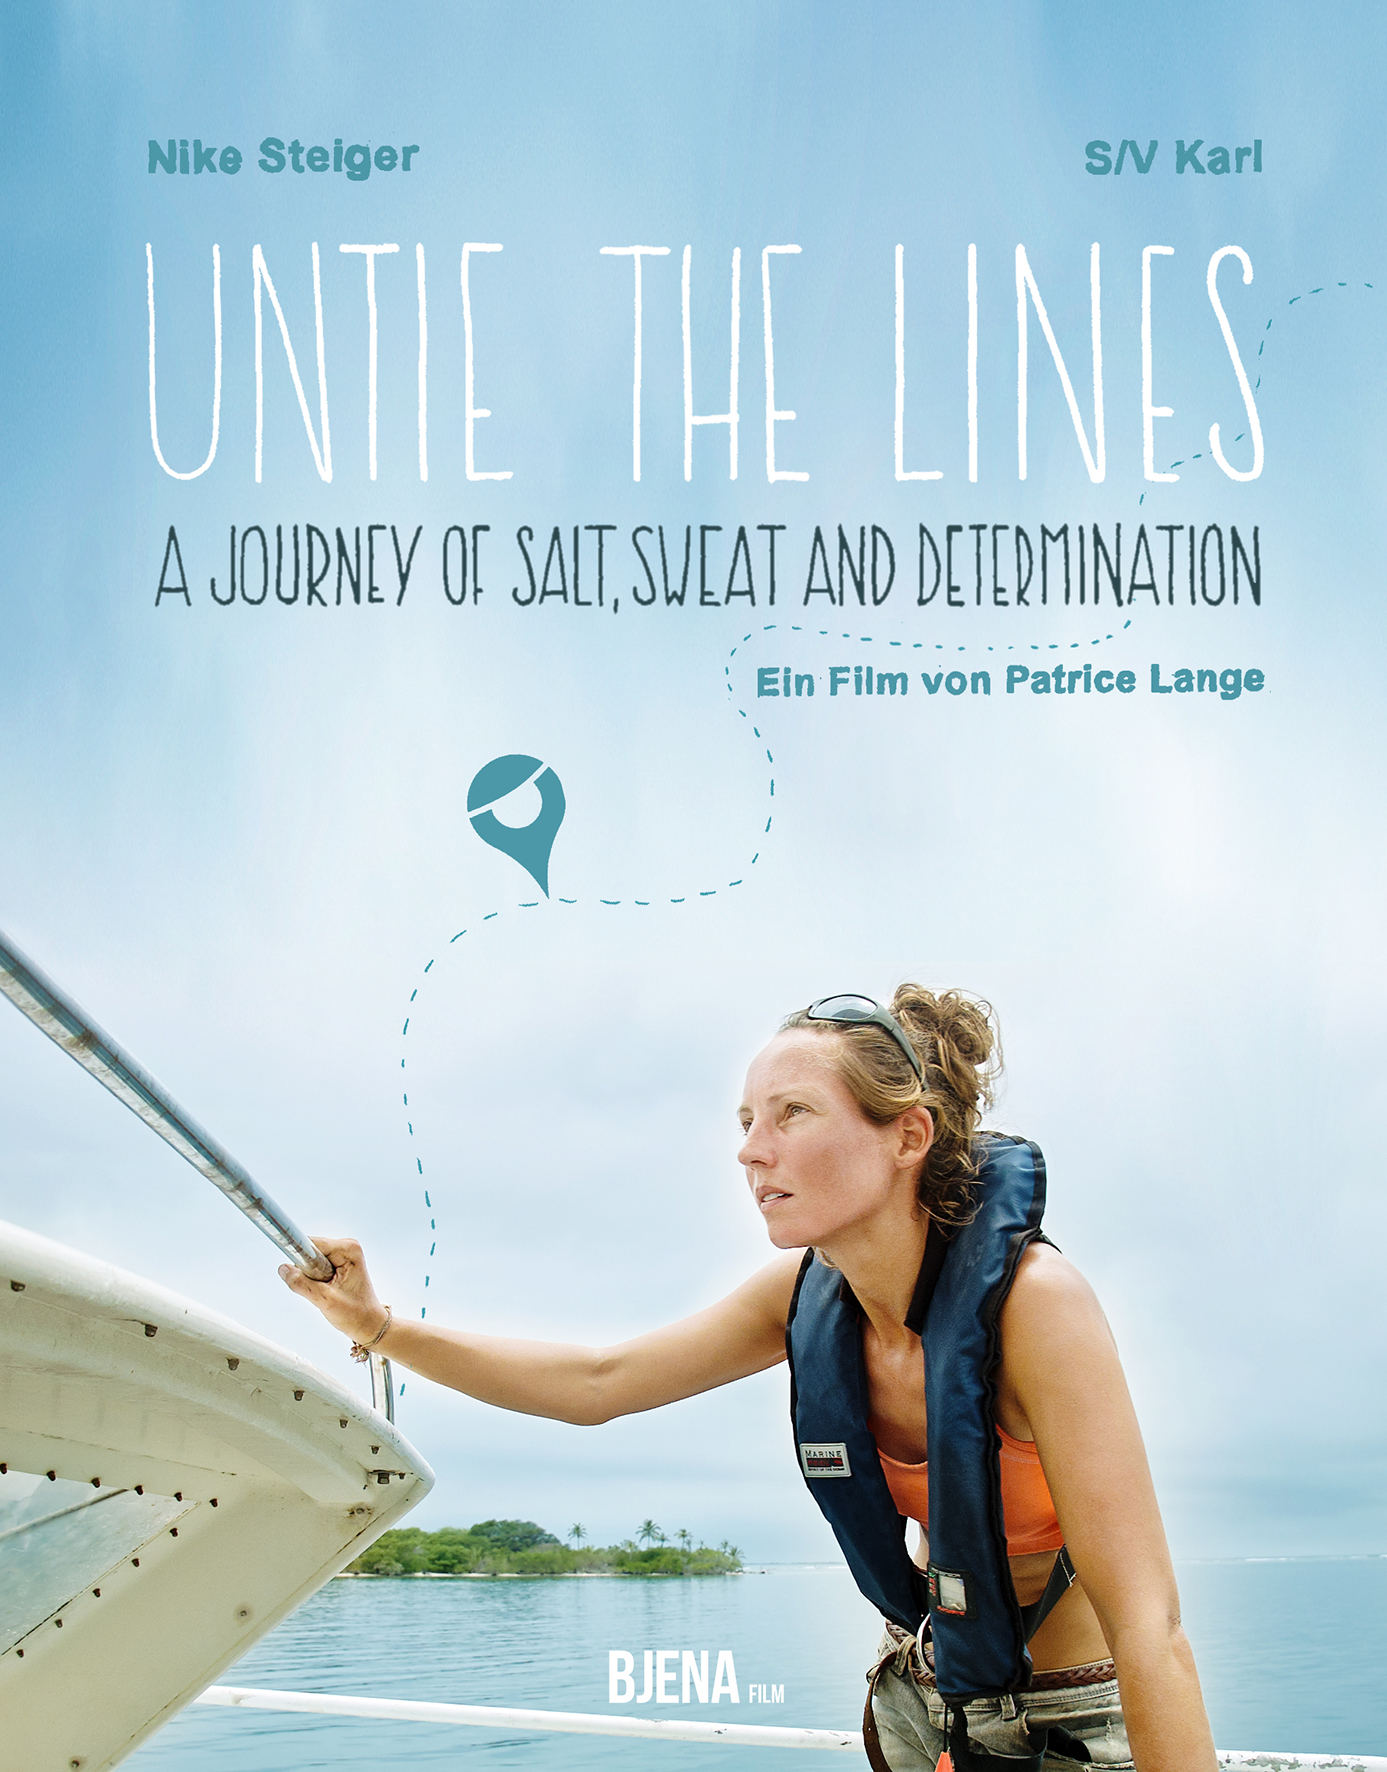 UNTIE THE LINES -SPECIAL SHOWING WEDNESDAY 3/21